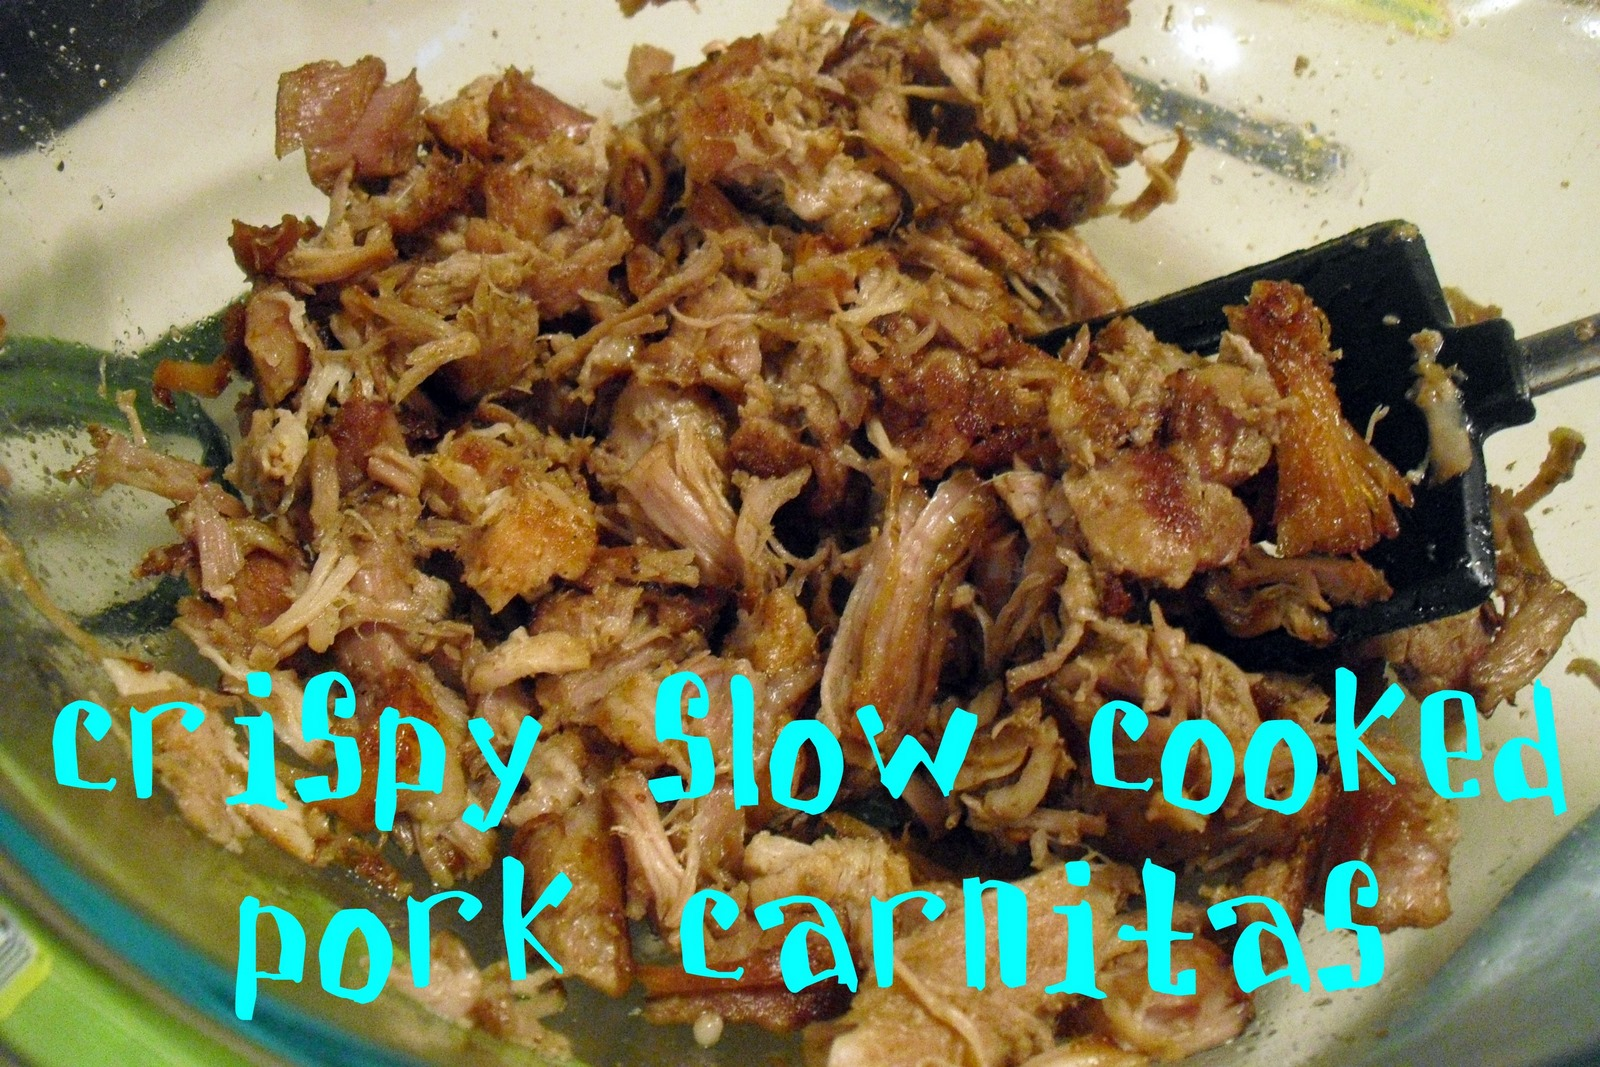 Attack of the Hungry Monster: Crockpot Pork Carnitas (Tacos)